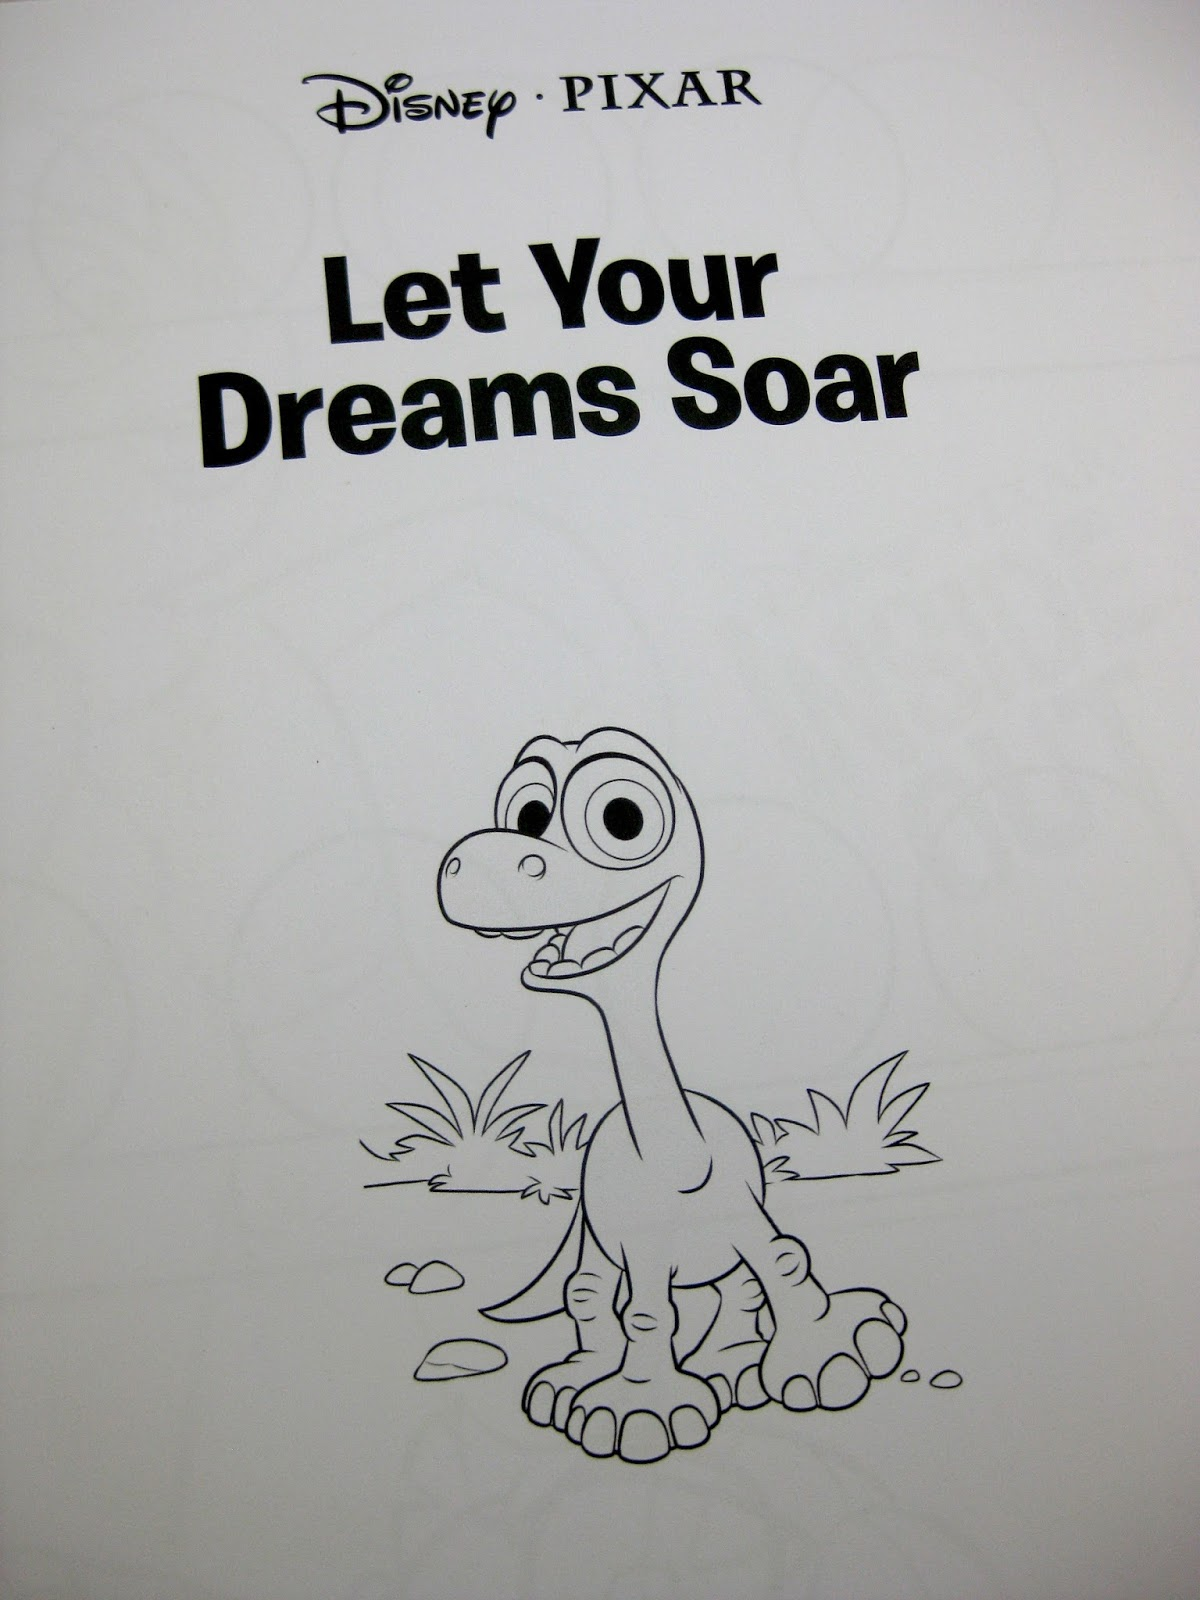 pixar films with stickers and fun coloring pages including inside out the good dinosaur cars with some cars 2 thrown in finding nemo monsters - Pixar Coloring Pages Monsters